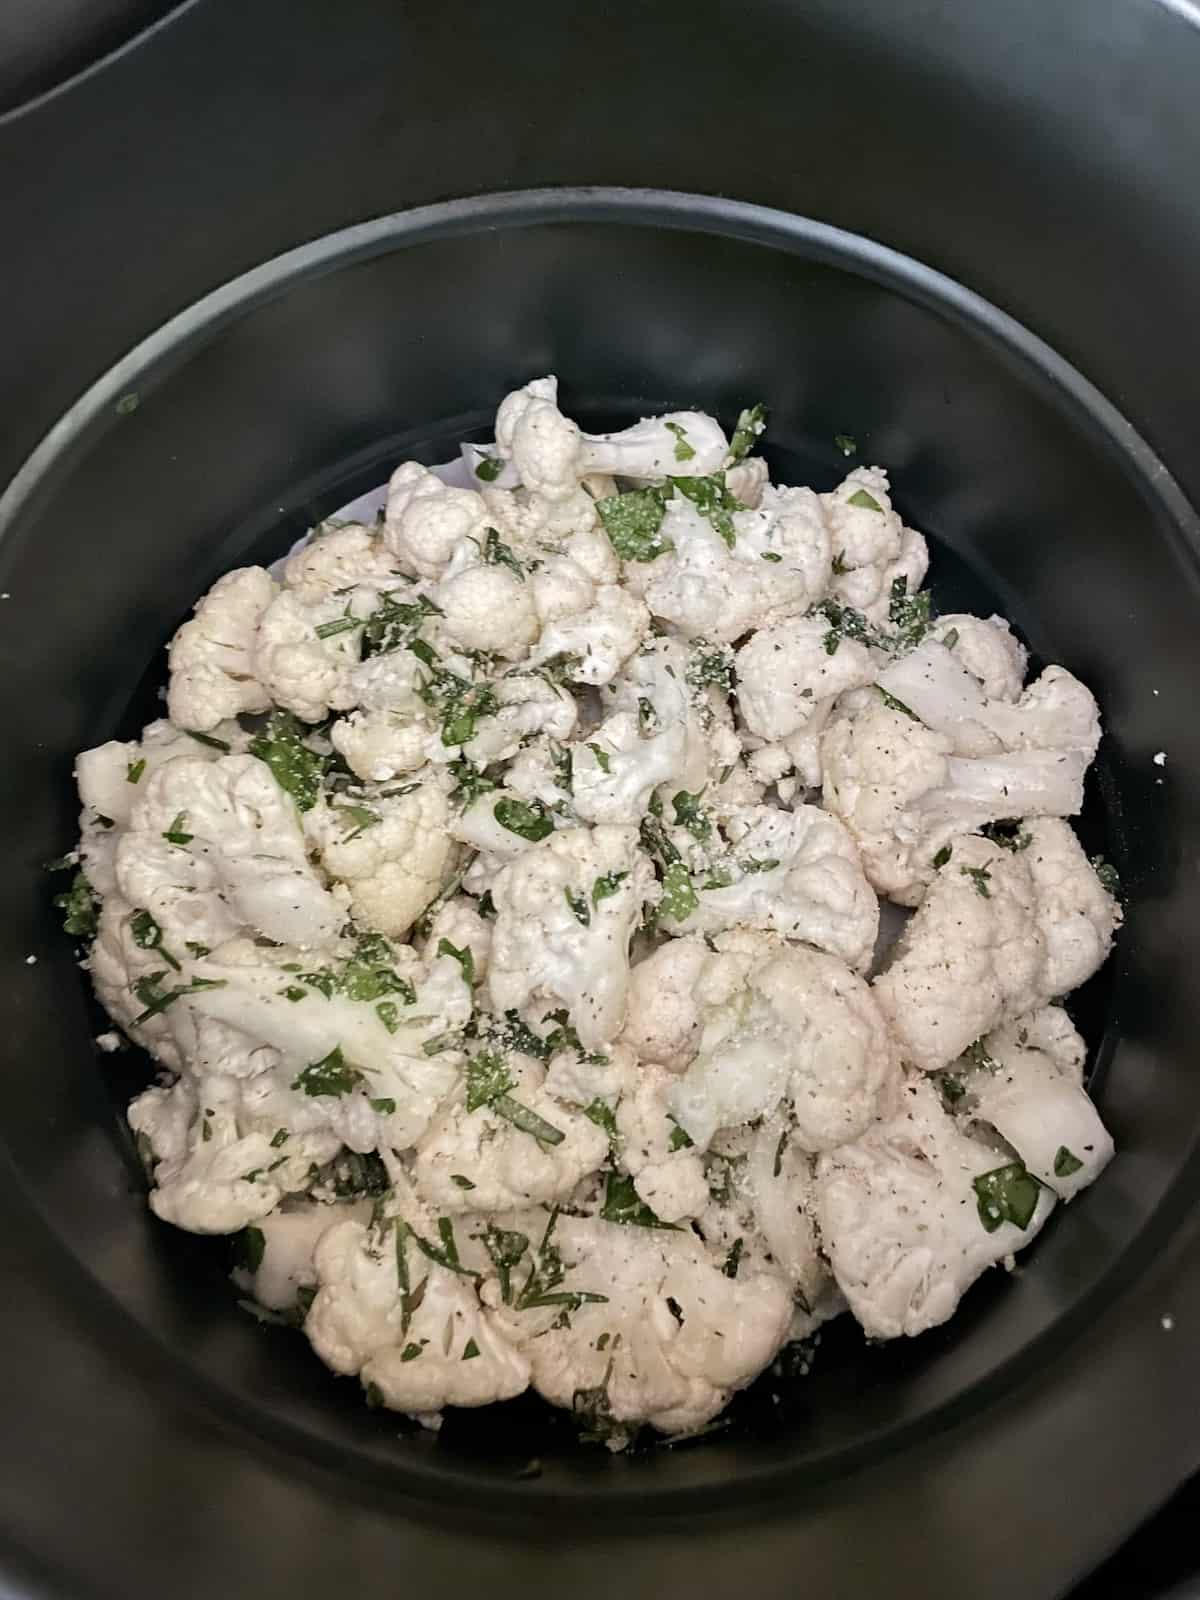 uncooked cauliflower in the basket of air fryer sprinkled with herbs and spices